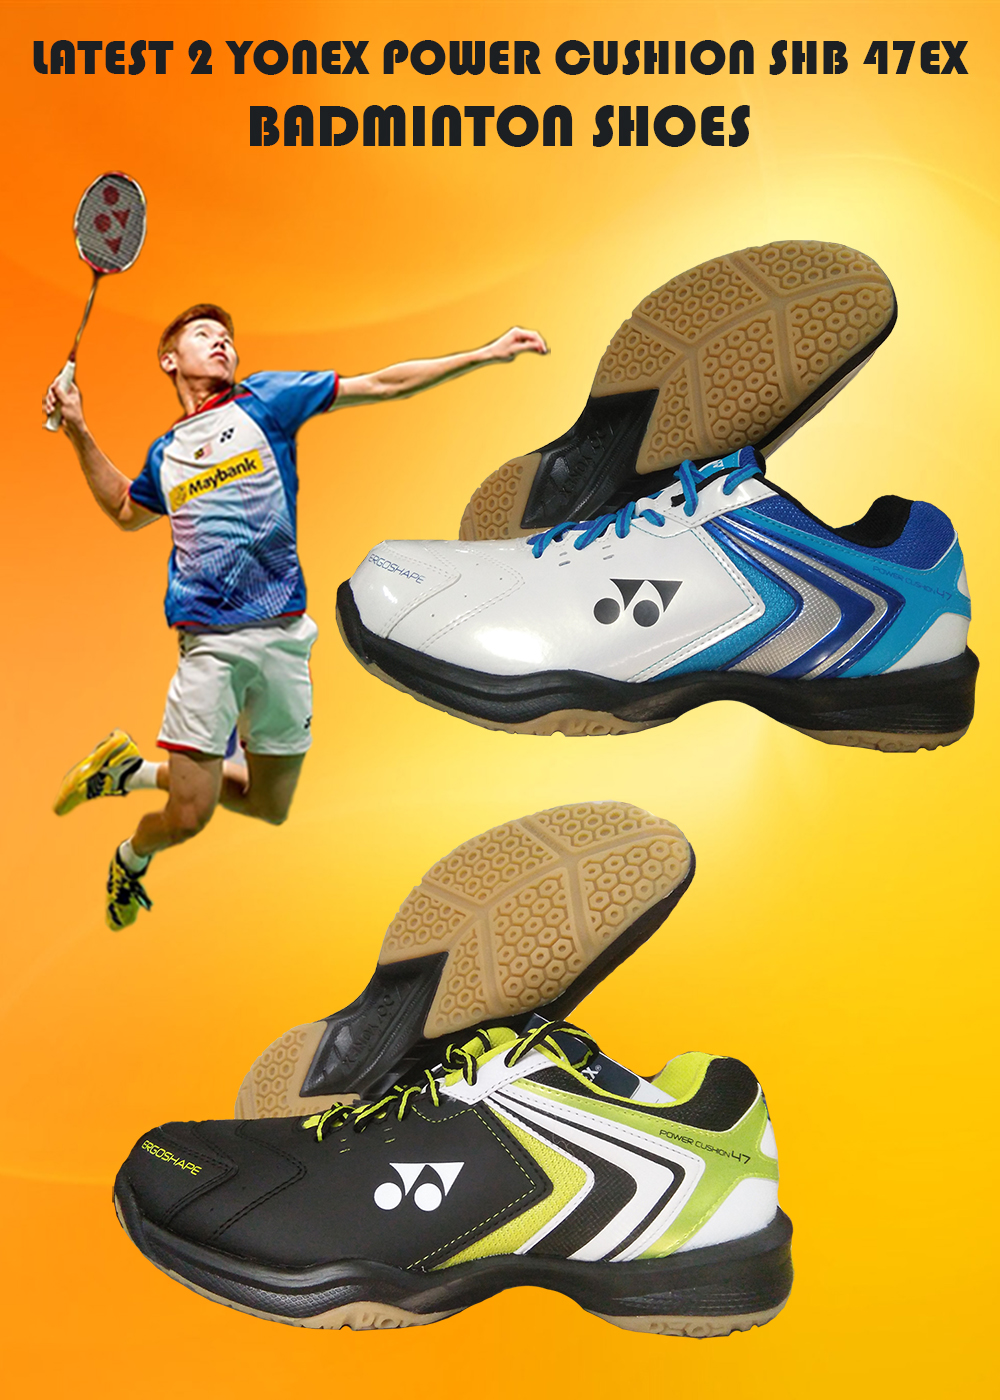 Yonex Power Cushion SHB 47EX SHOES IMAGES_1